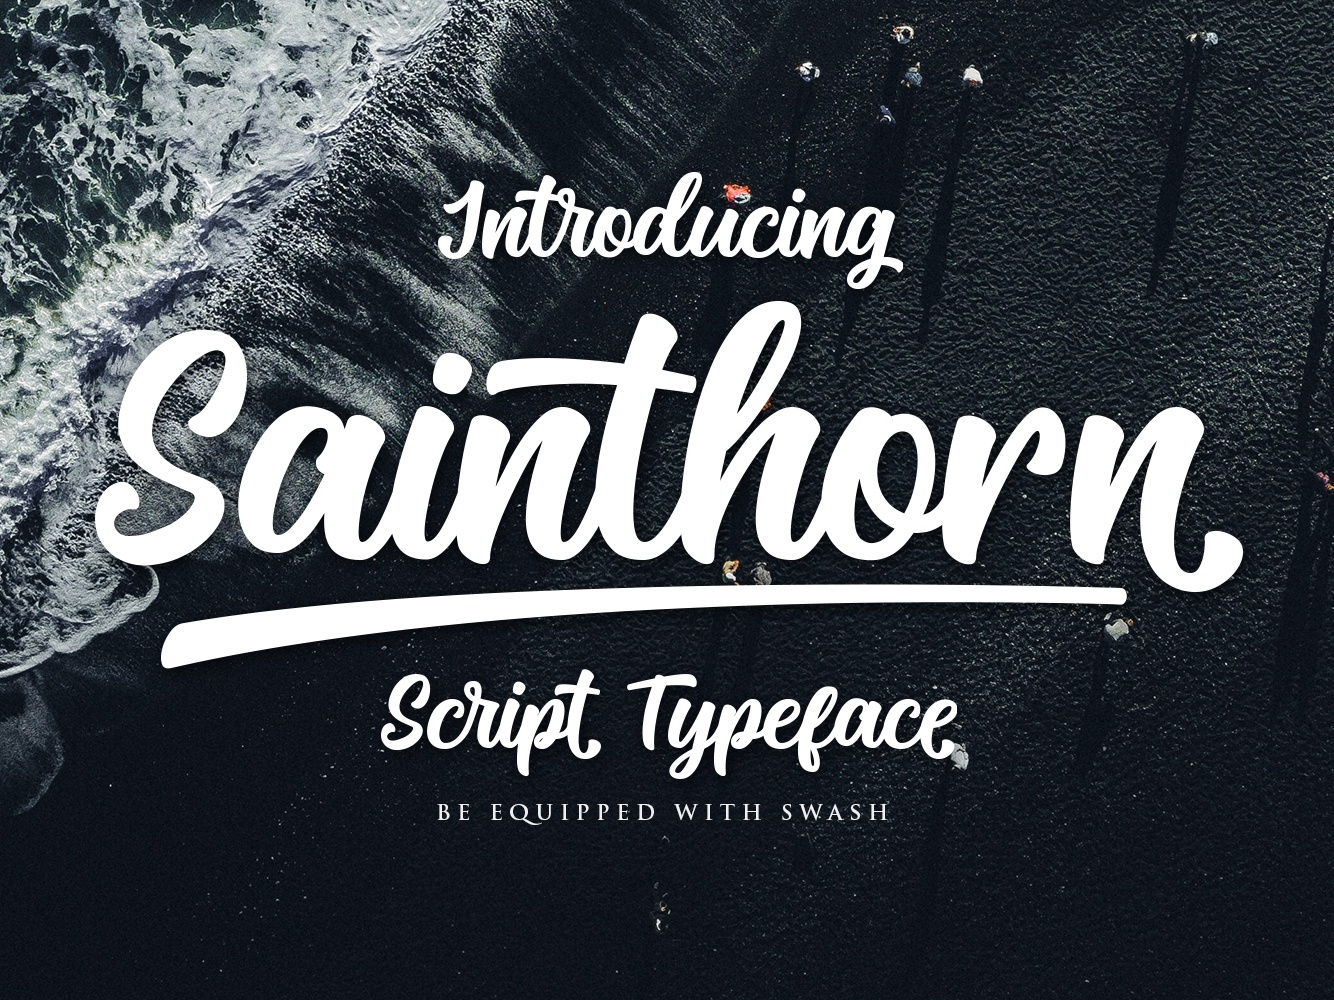 Sainthorn Script Font by Maculinc on Dribbble